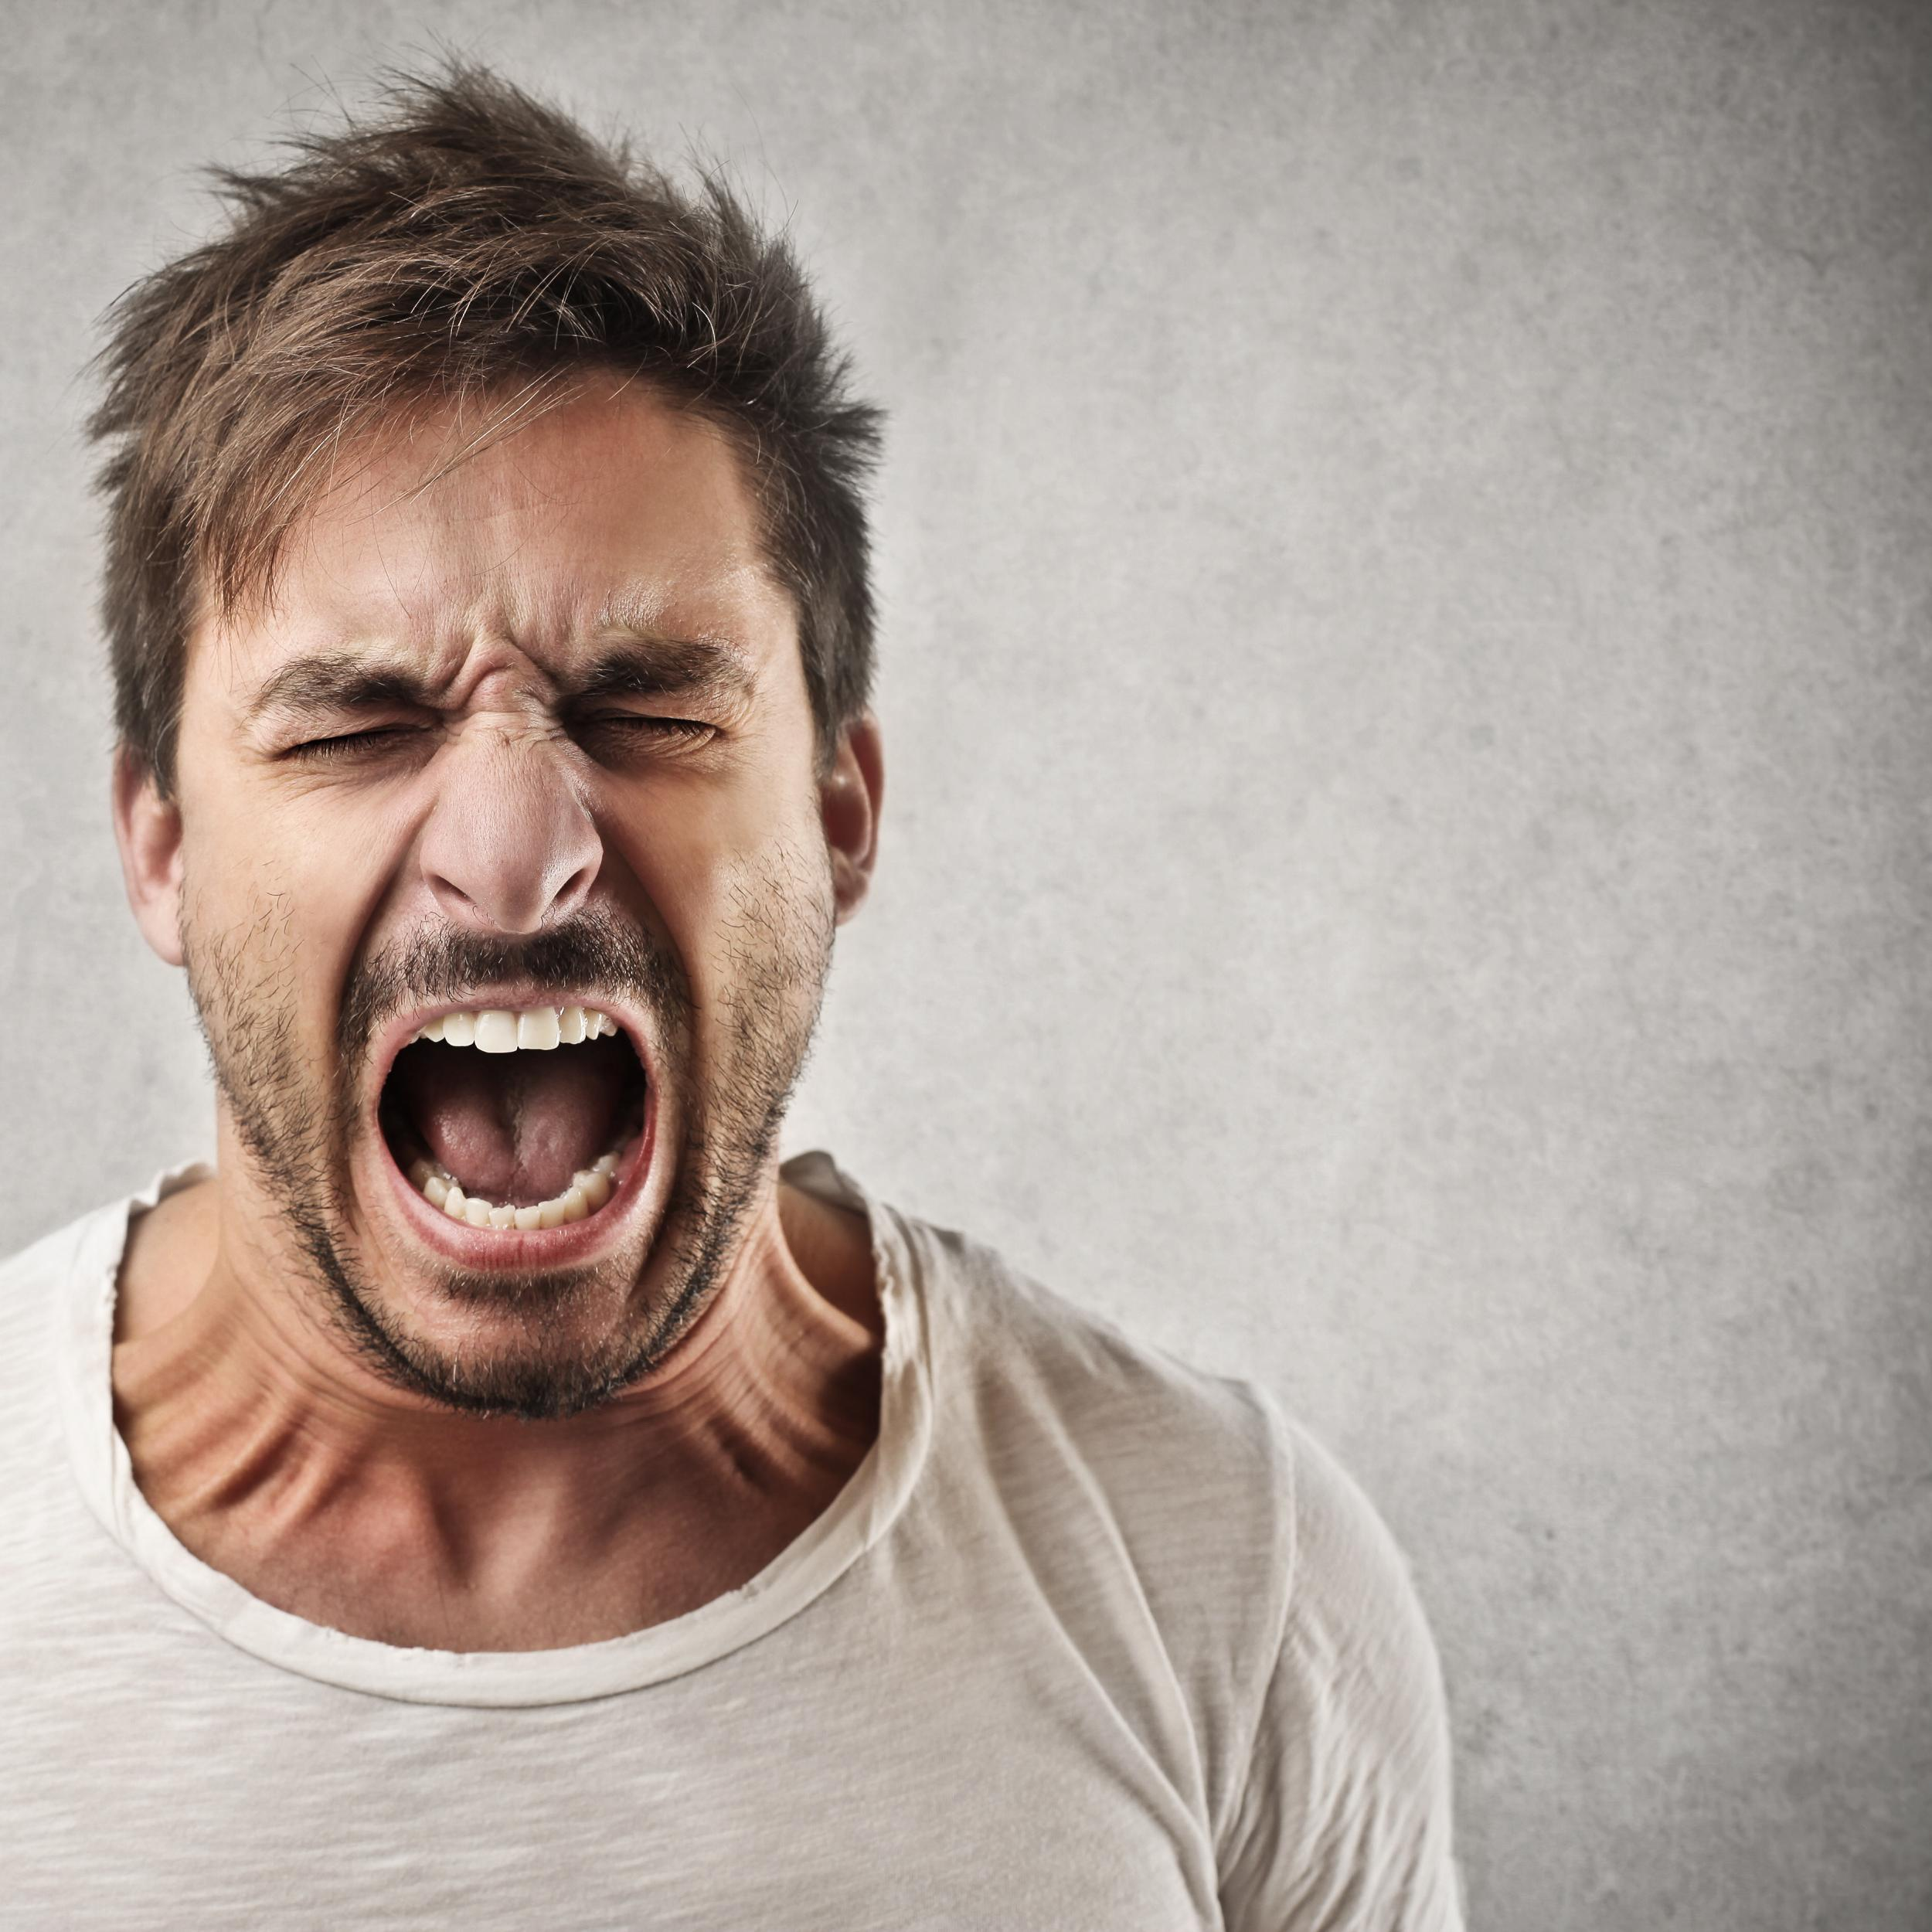 Can Powerful Emotions Kill You? The Negative Health Effects